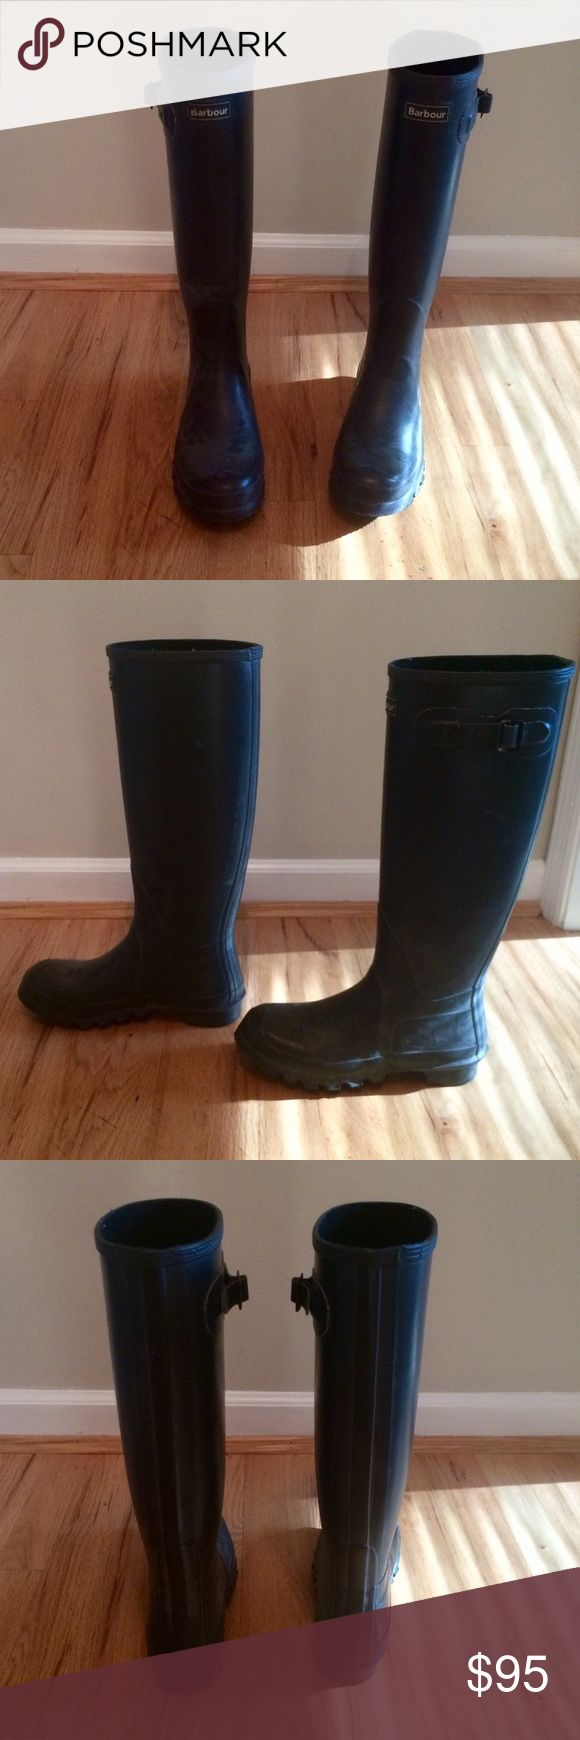 Barbour Wellies Navy Blue Barbour boots. Worn gently only in the rain. Fits size 8-8.5. Excellent condition. Barbour Shoes Winter & Rain Boots